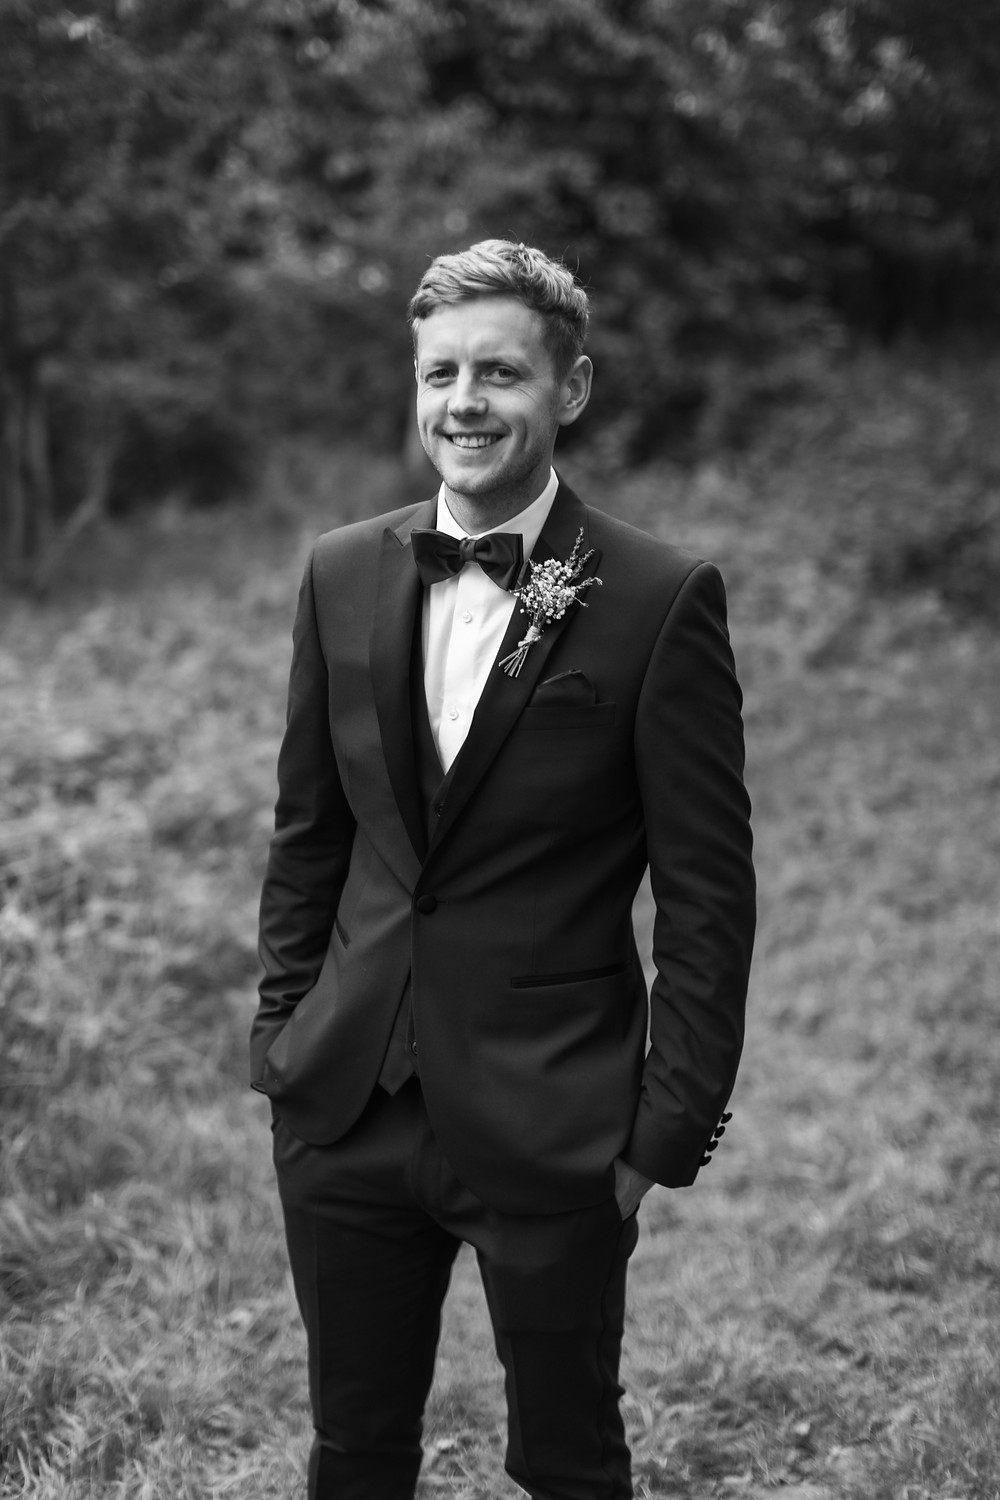 Portrait photography of the groom in black and white